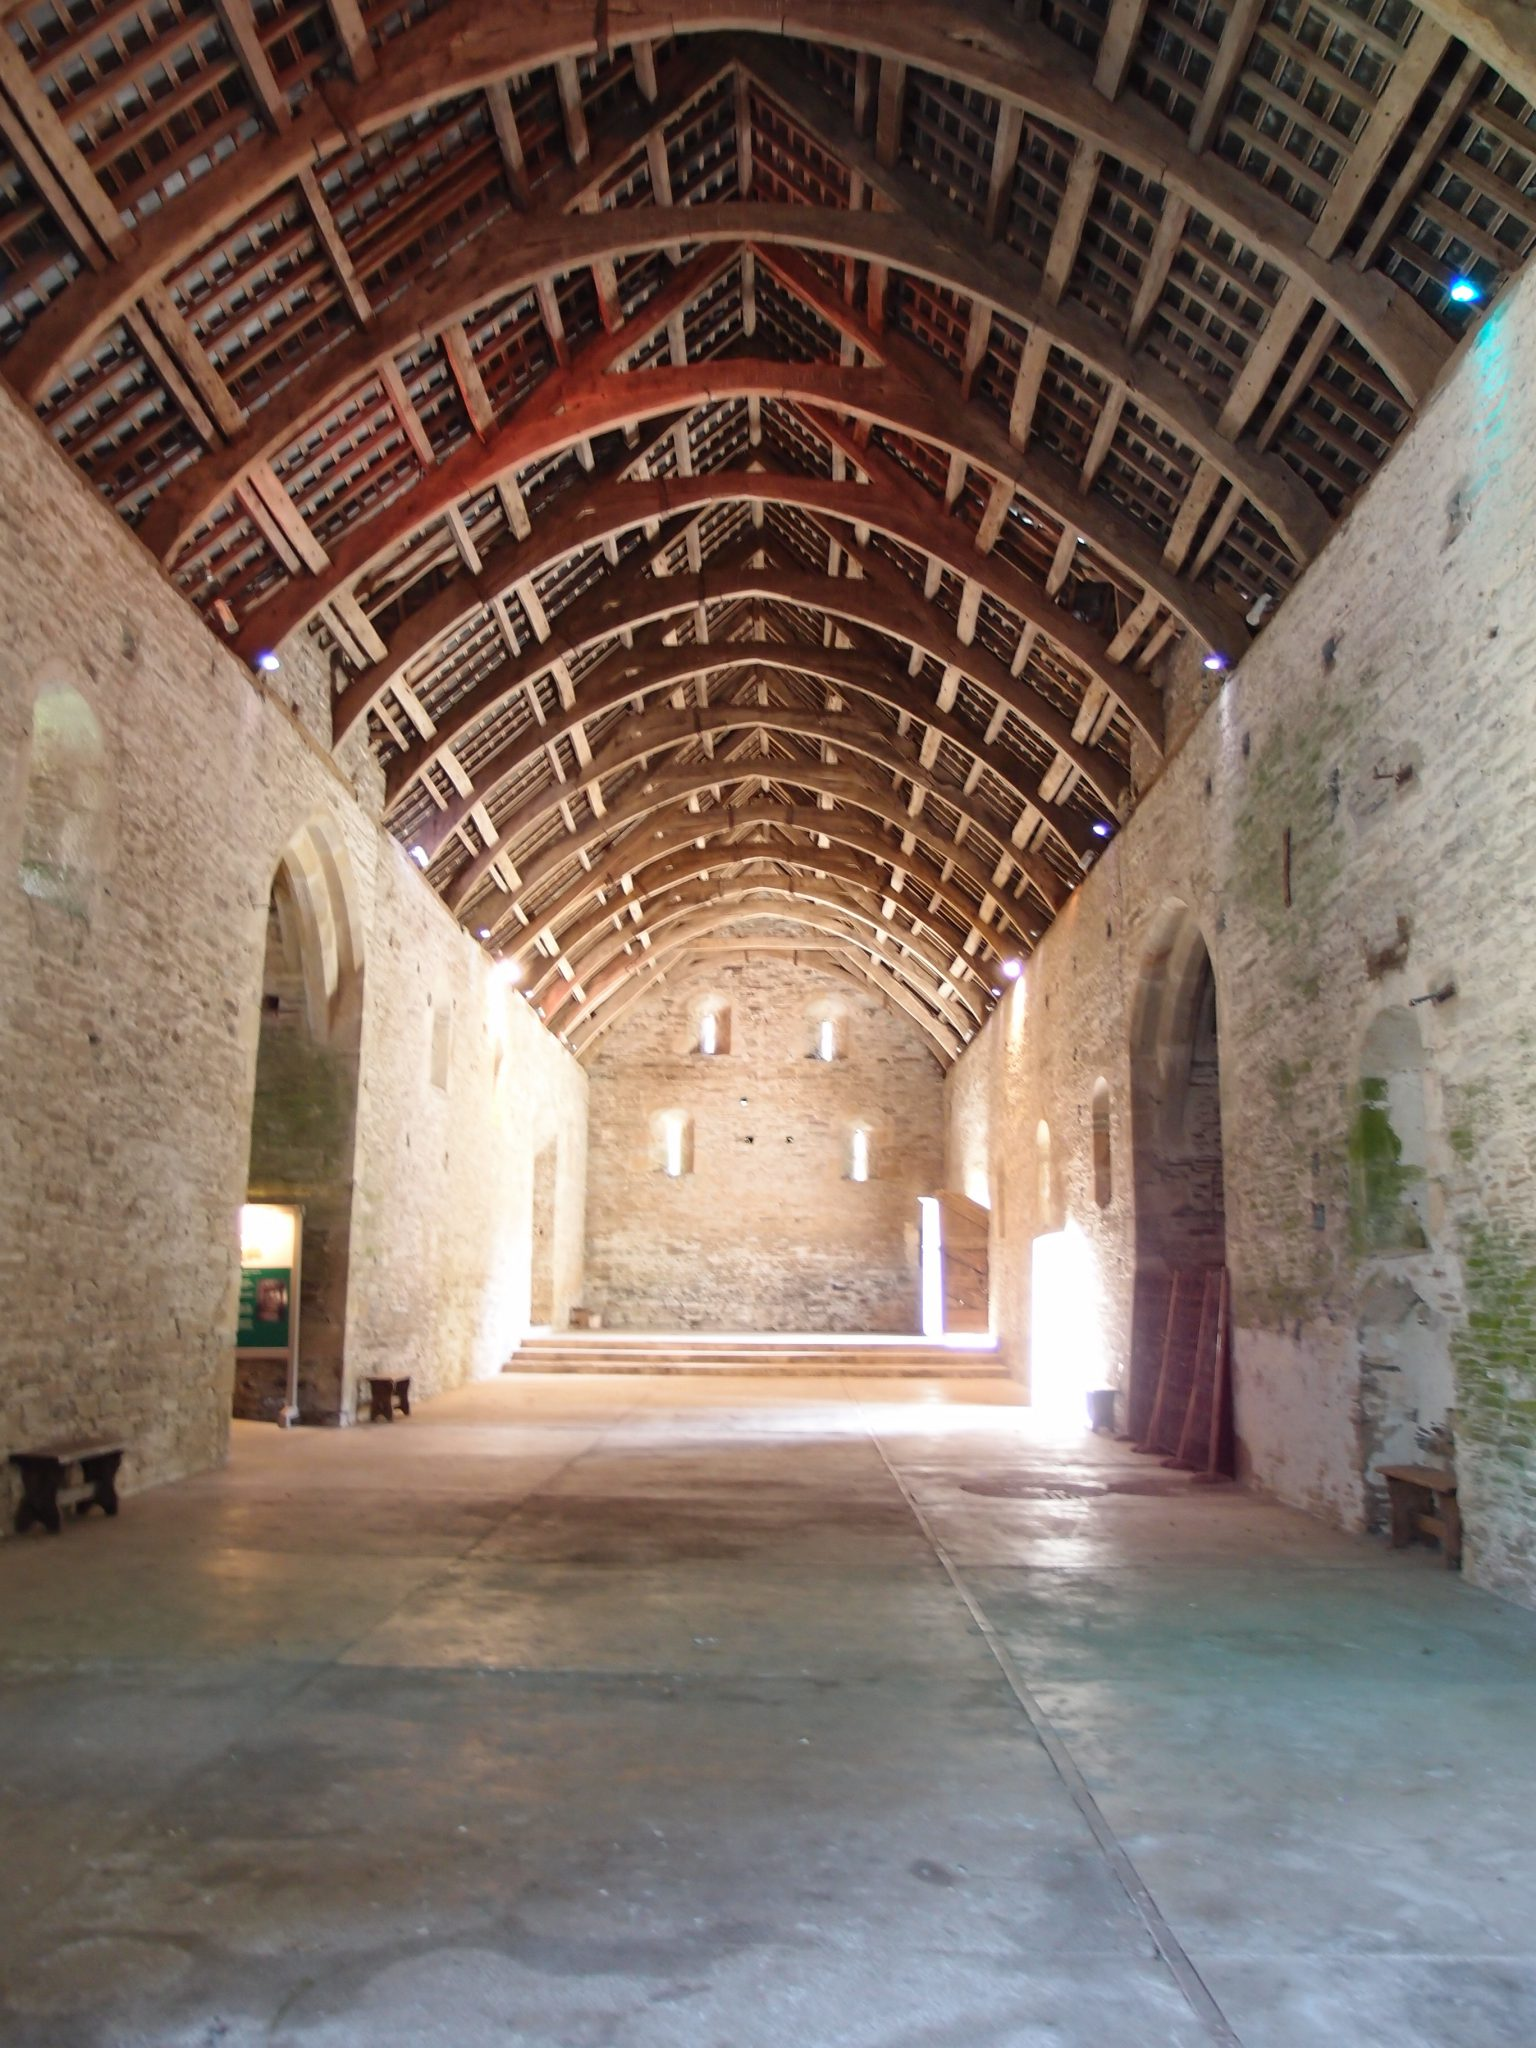 My view, looking toward the south end of the Great Barn. The walls date from 1300, and the arch-braced wooden roof was constructed in the 15th century.